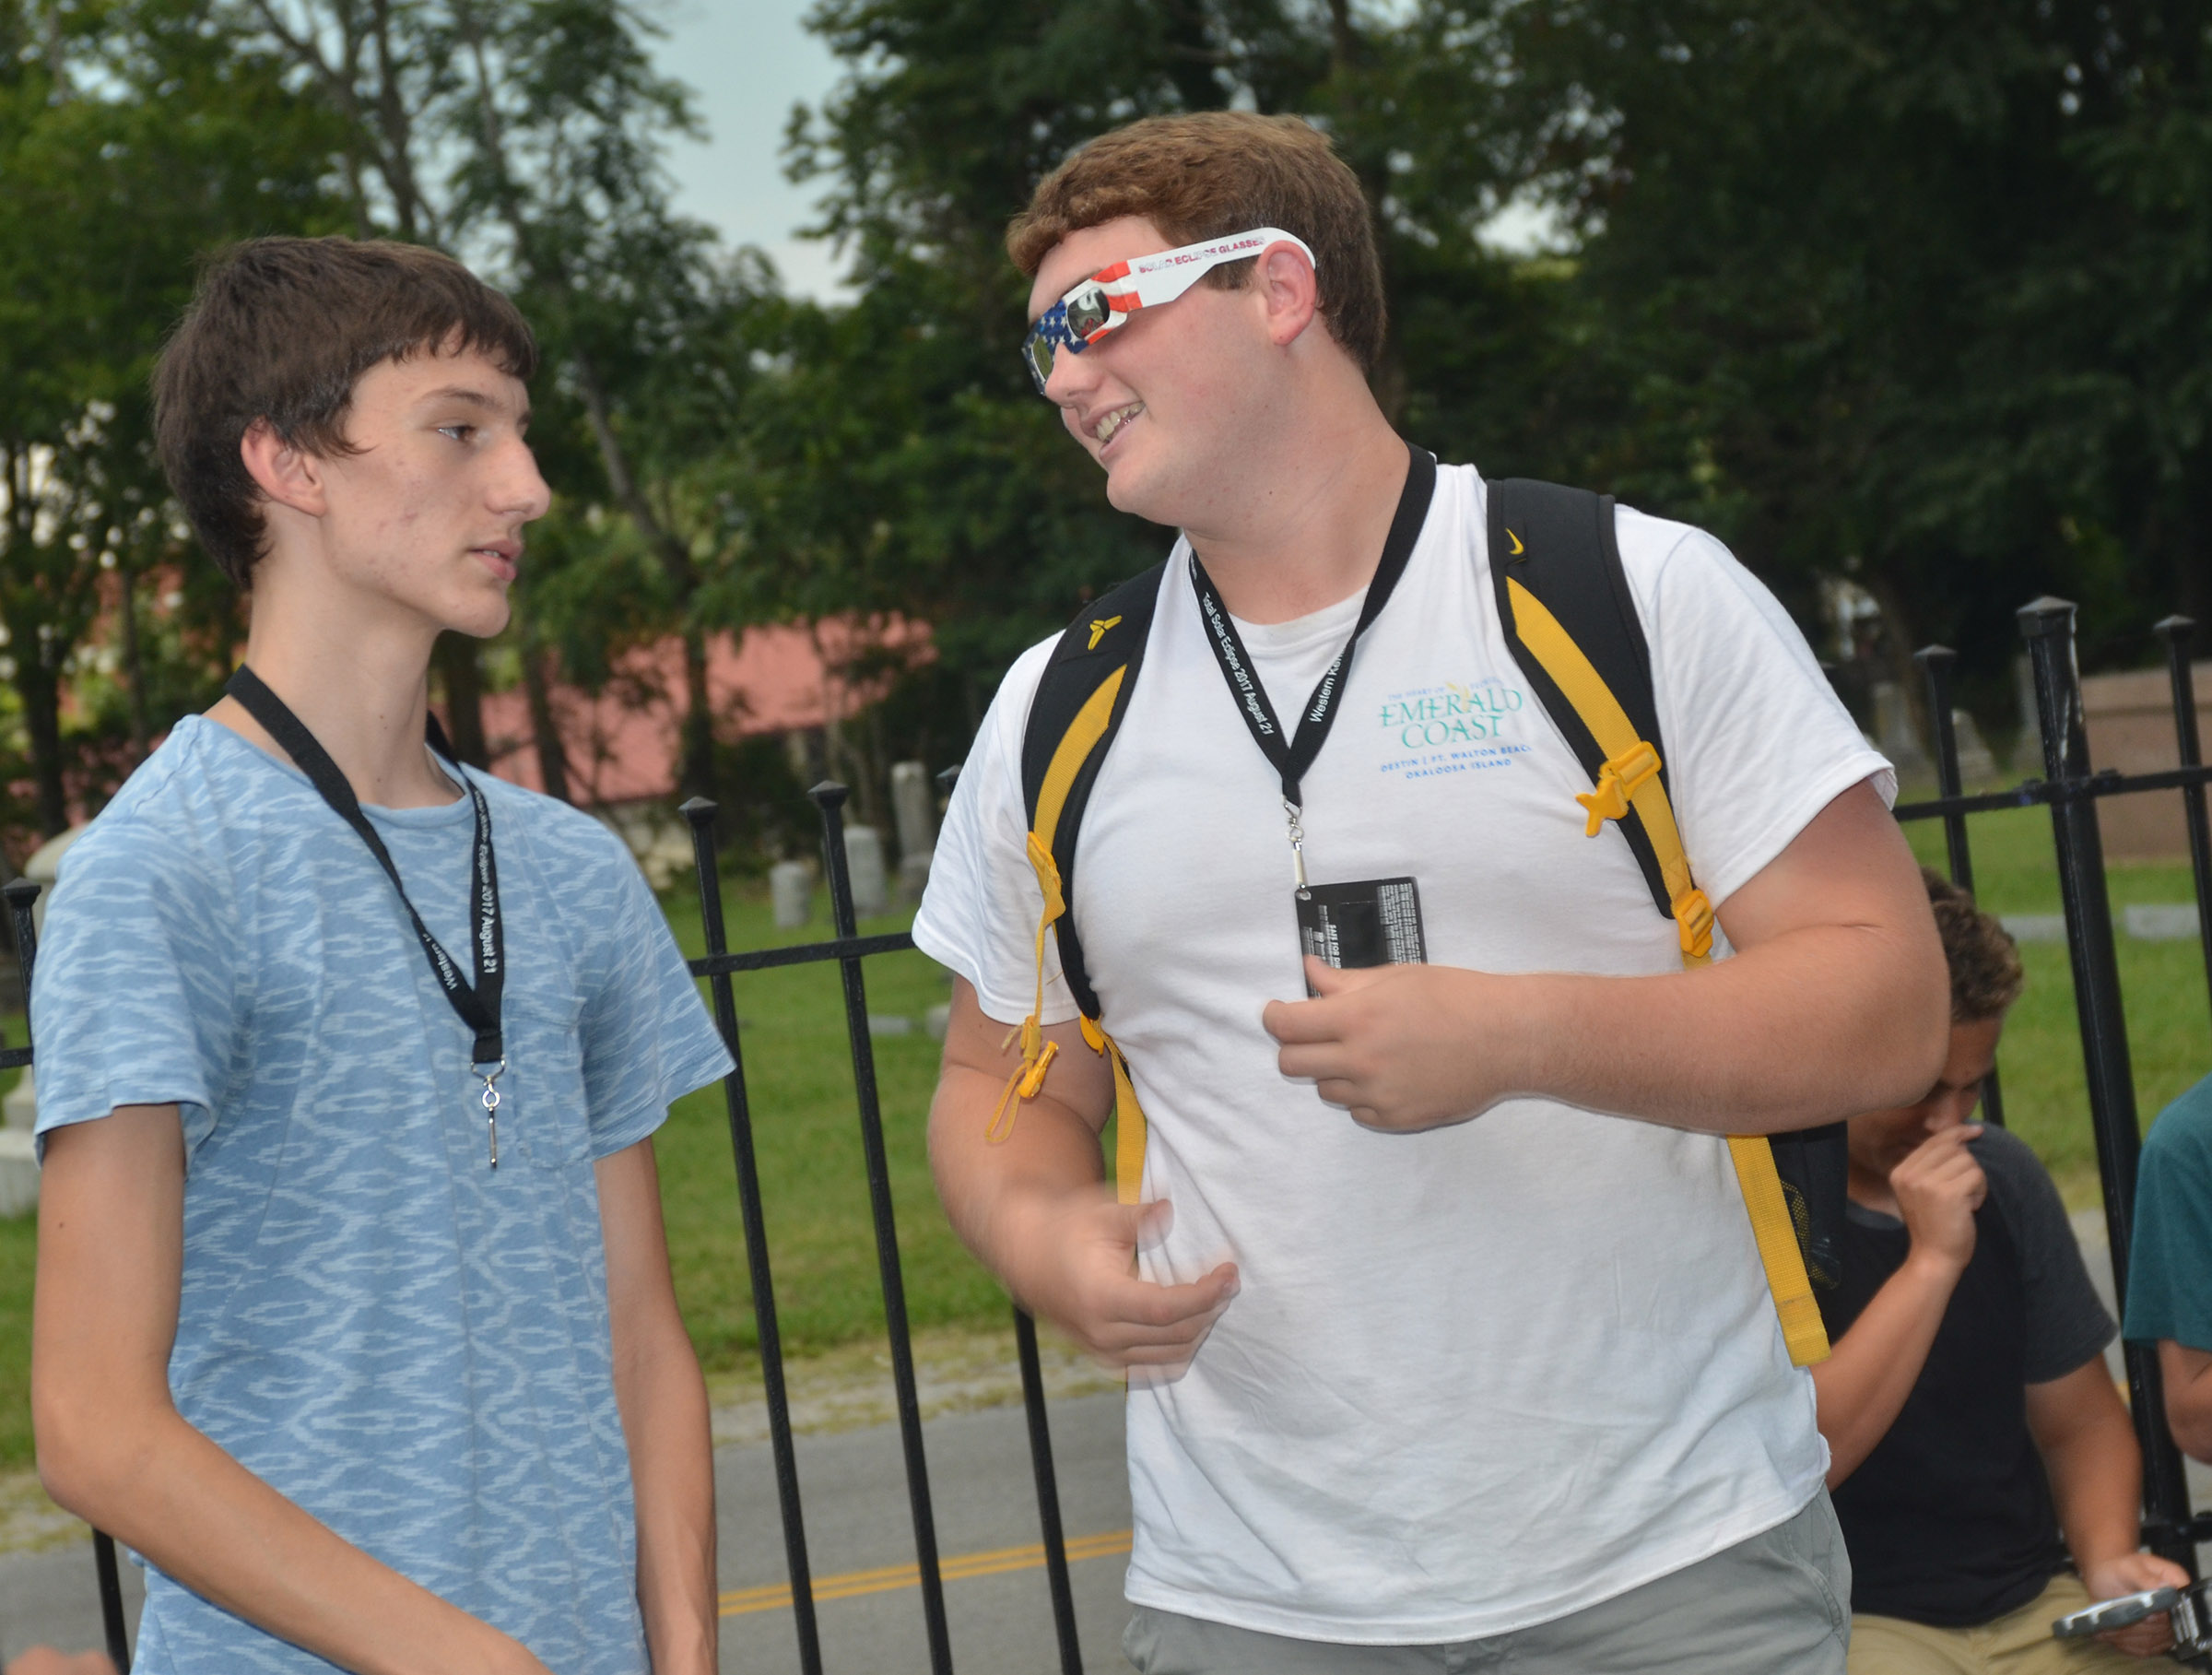 CHS juniors Ian McAninch, at left, and Lane Bottom talk as they view the eclipse.